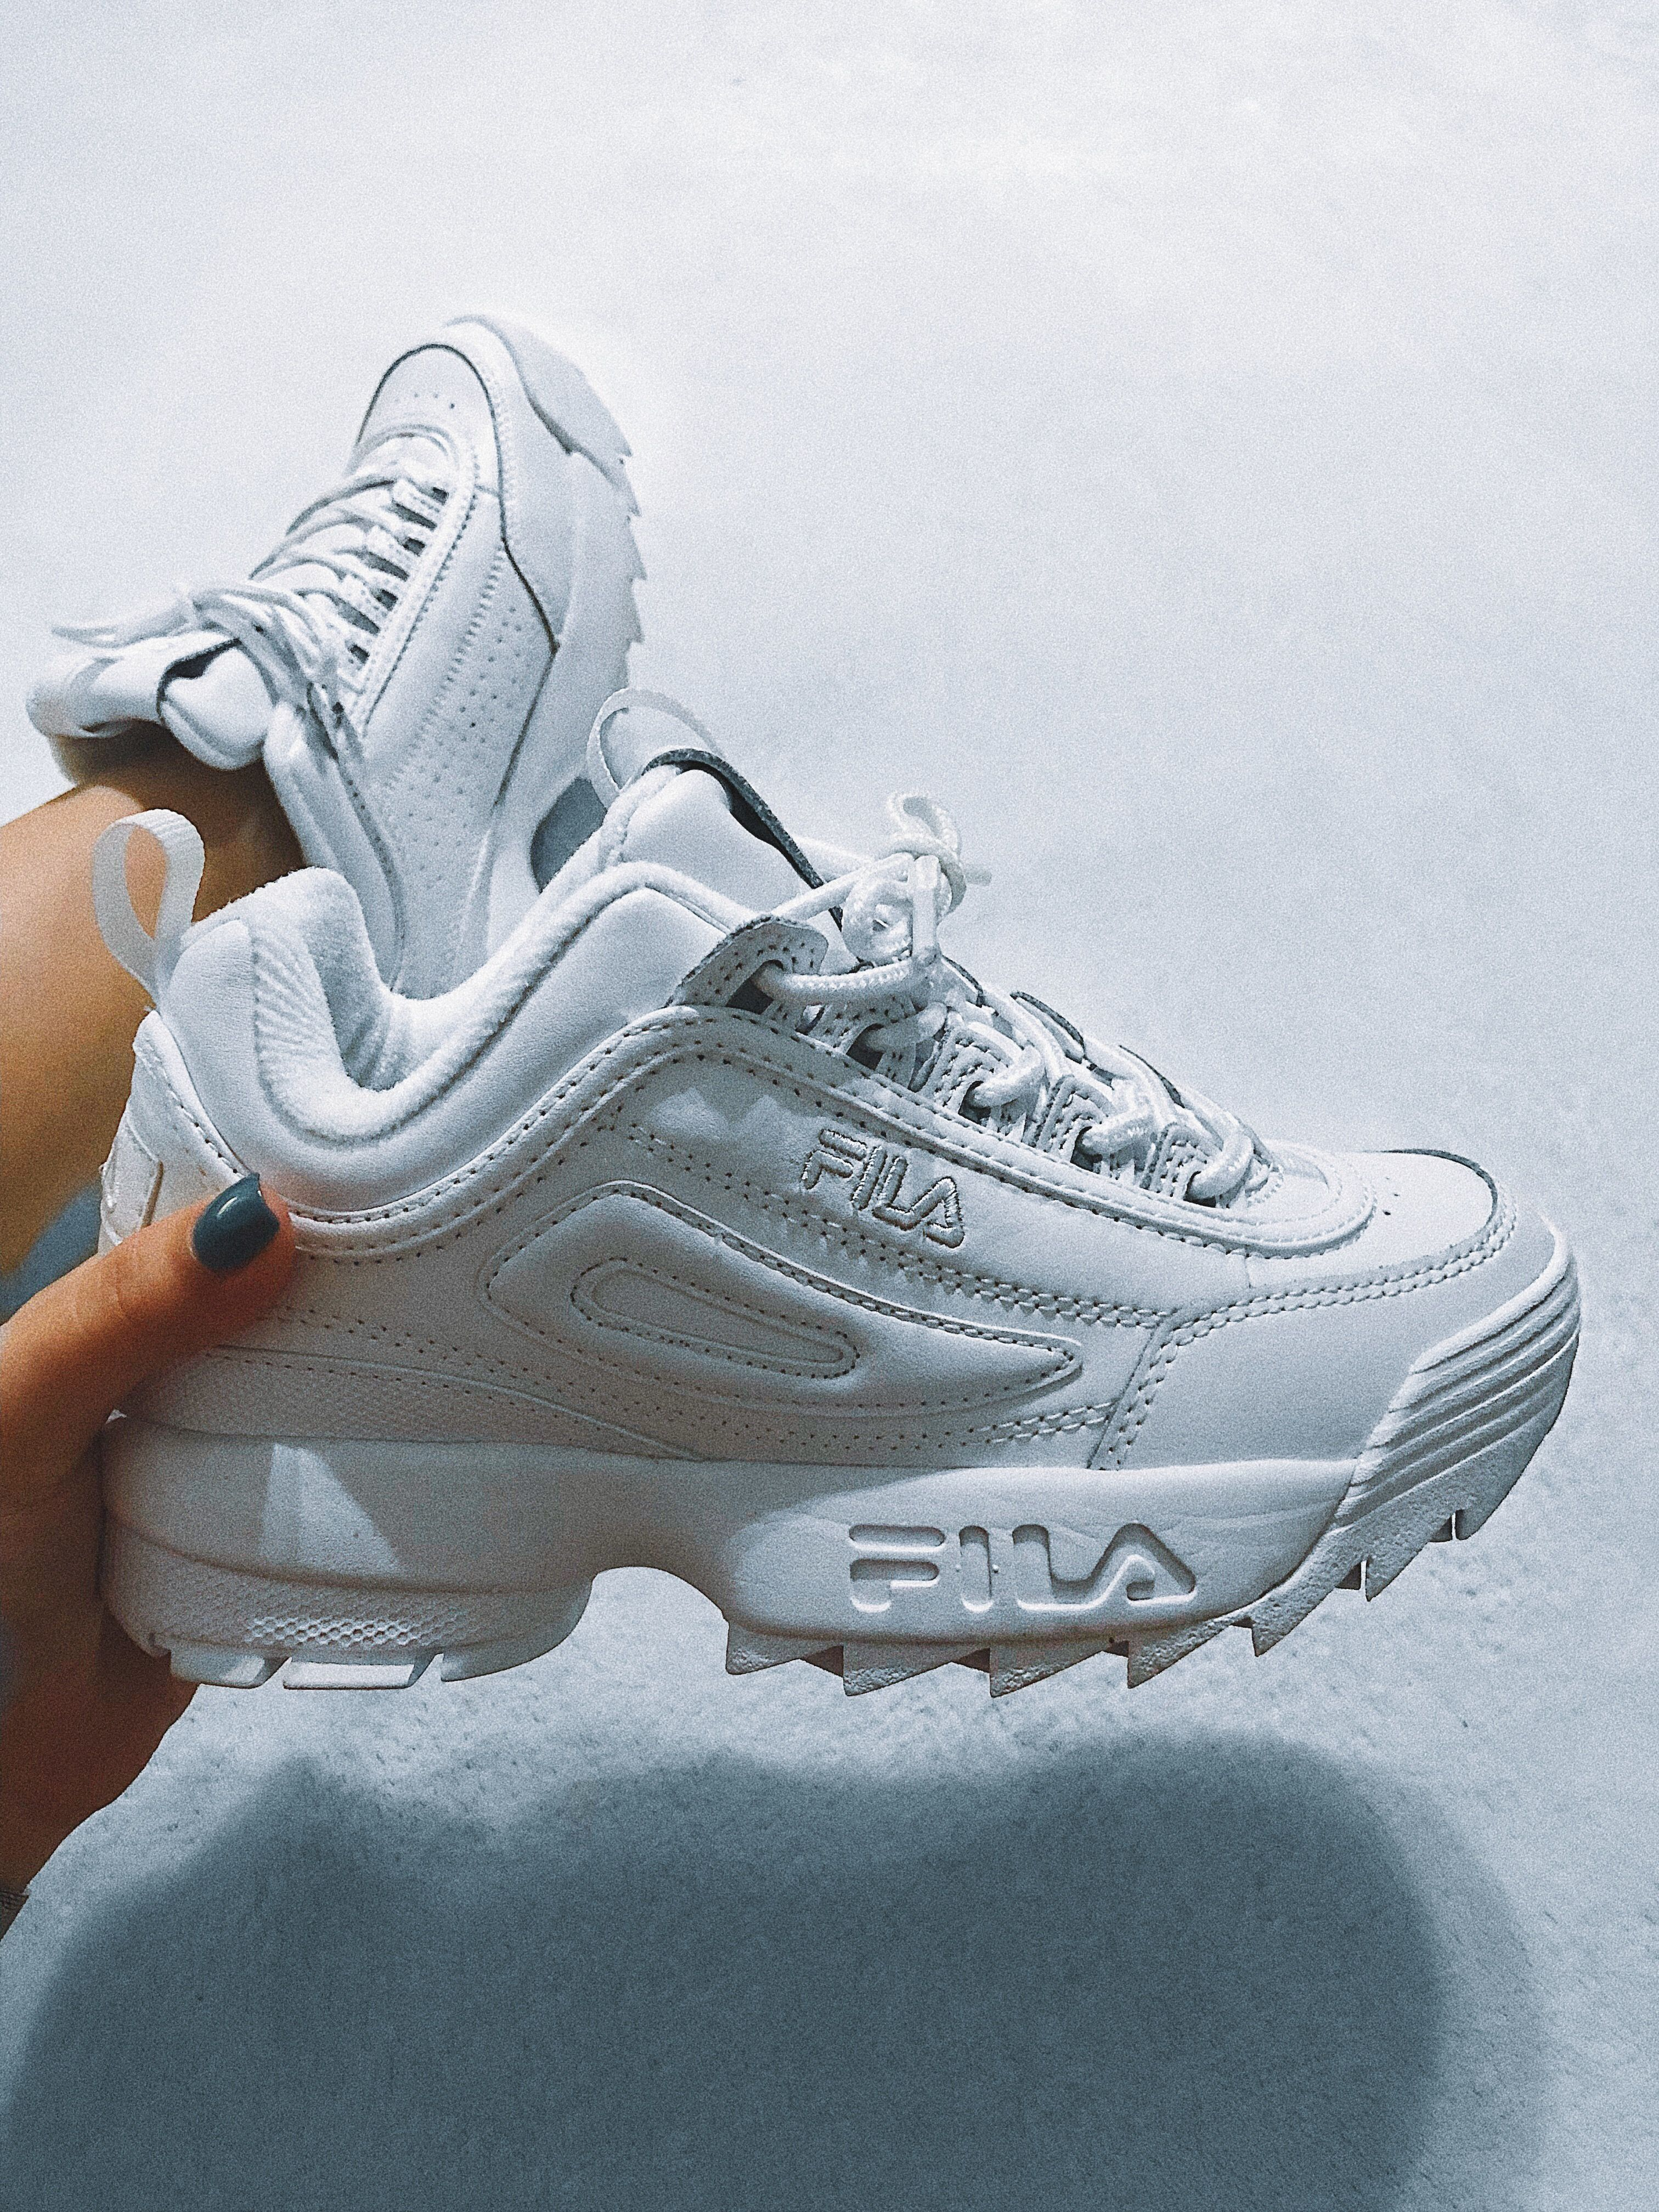 Fila shoes in 2020 | Sneakers, Nike outfits, Sneakers nike